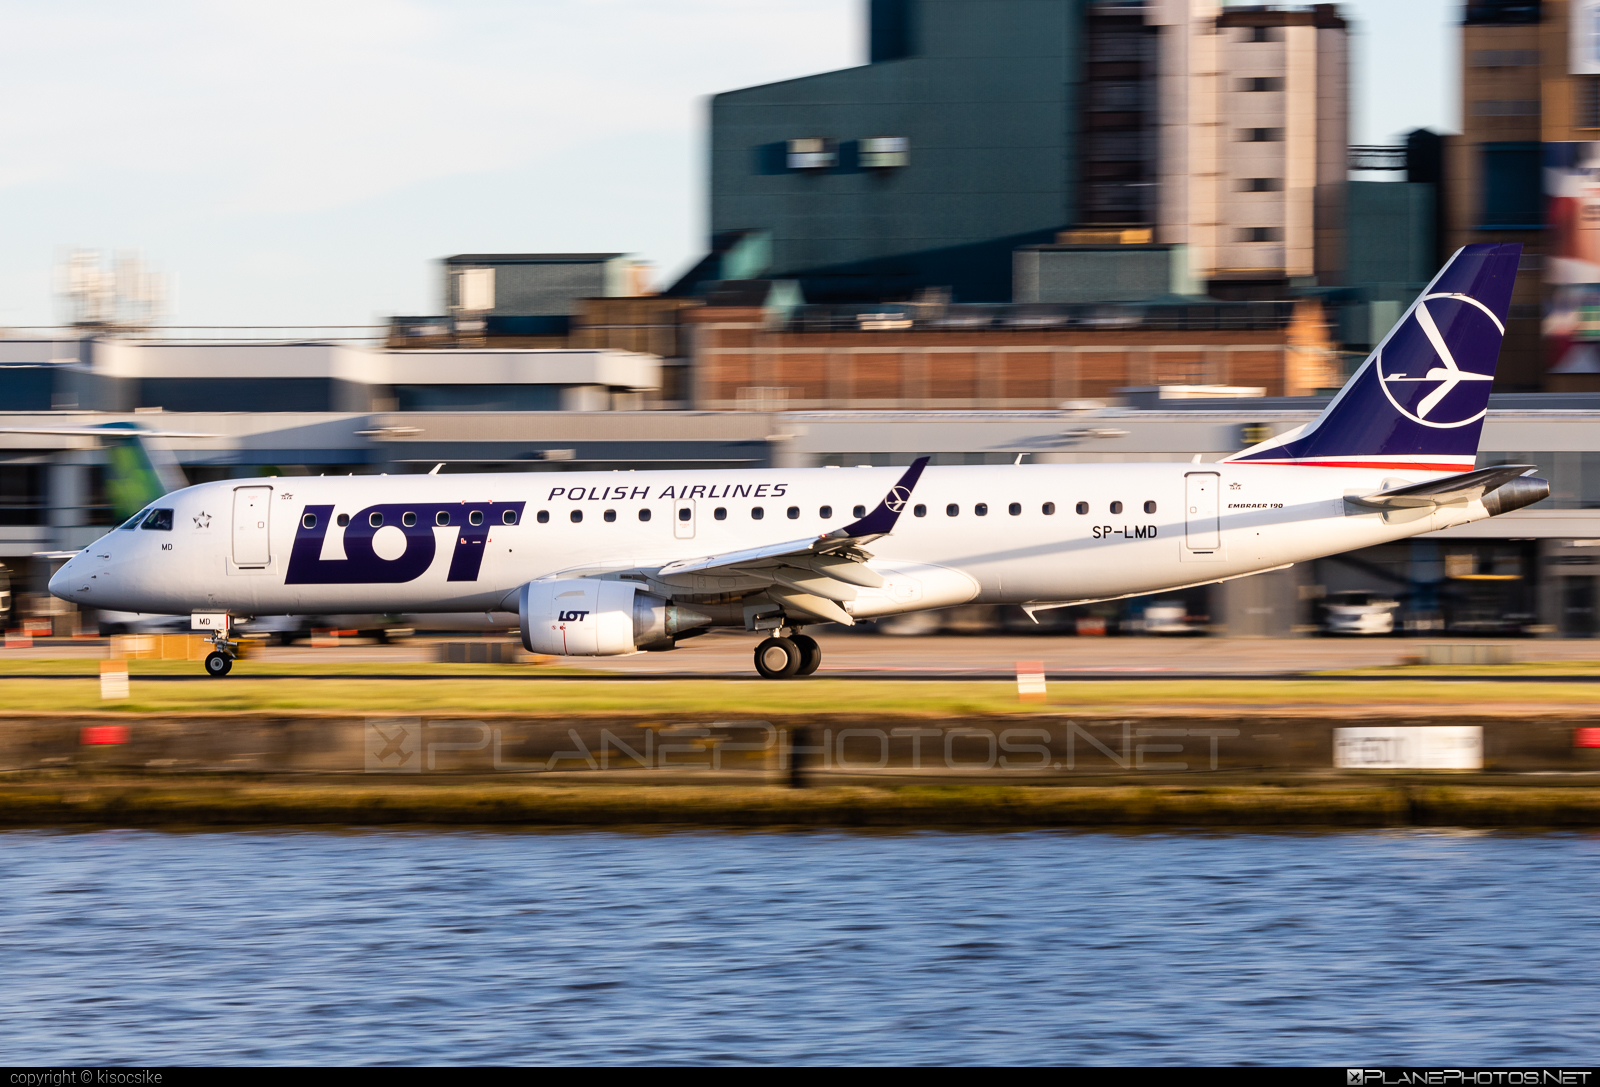 Embraer E190STD (ERJ-190-100STD) - SP-LMD operated by LOT Polish Airlines #e190 #e190100 #e190100std #e190std #embraer #embraer190 #embraer190100std #embraer190std #lot #lotpolishairlines